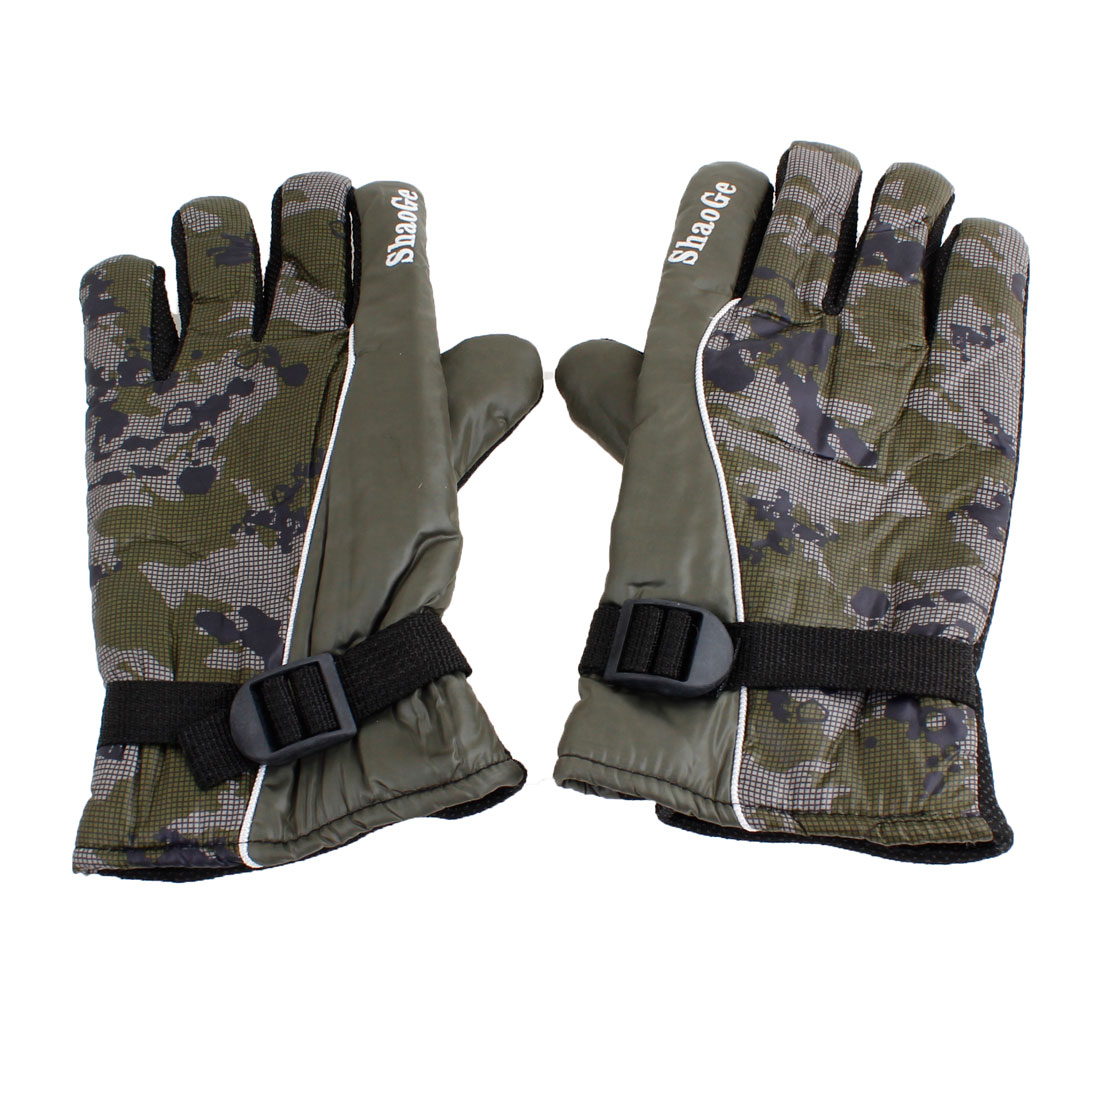 Camouflage Pattern Hand Warmer Winter Warm Gloves Army Green Pair for Man